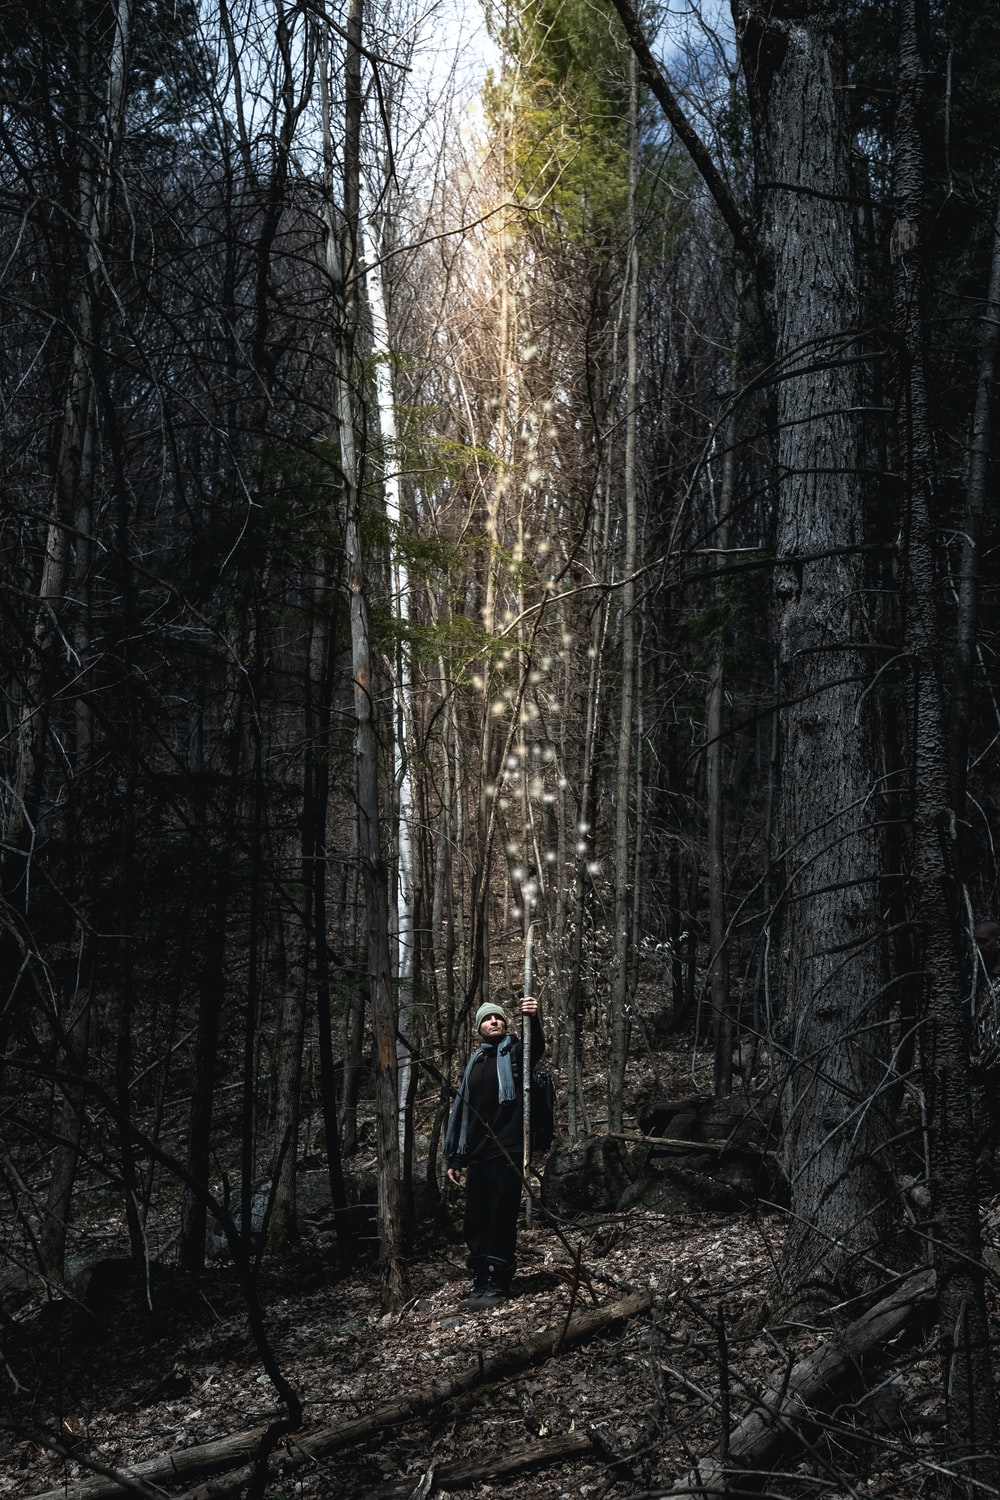 person in black jacket standing in the middle of the woods